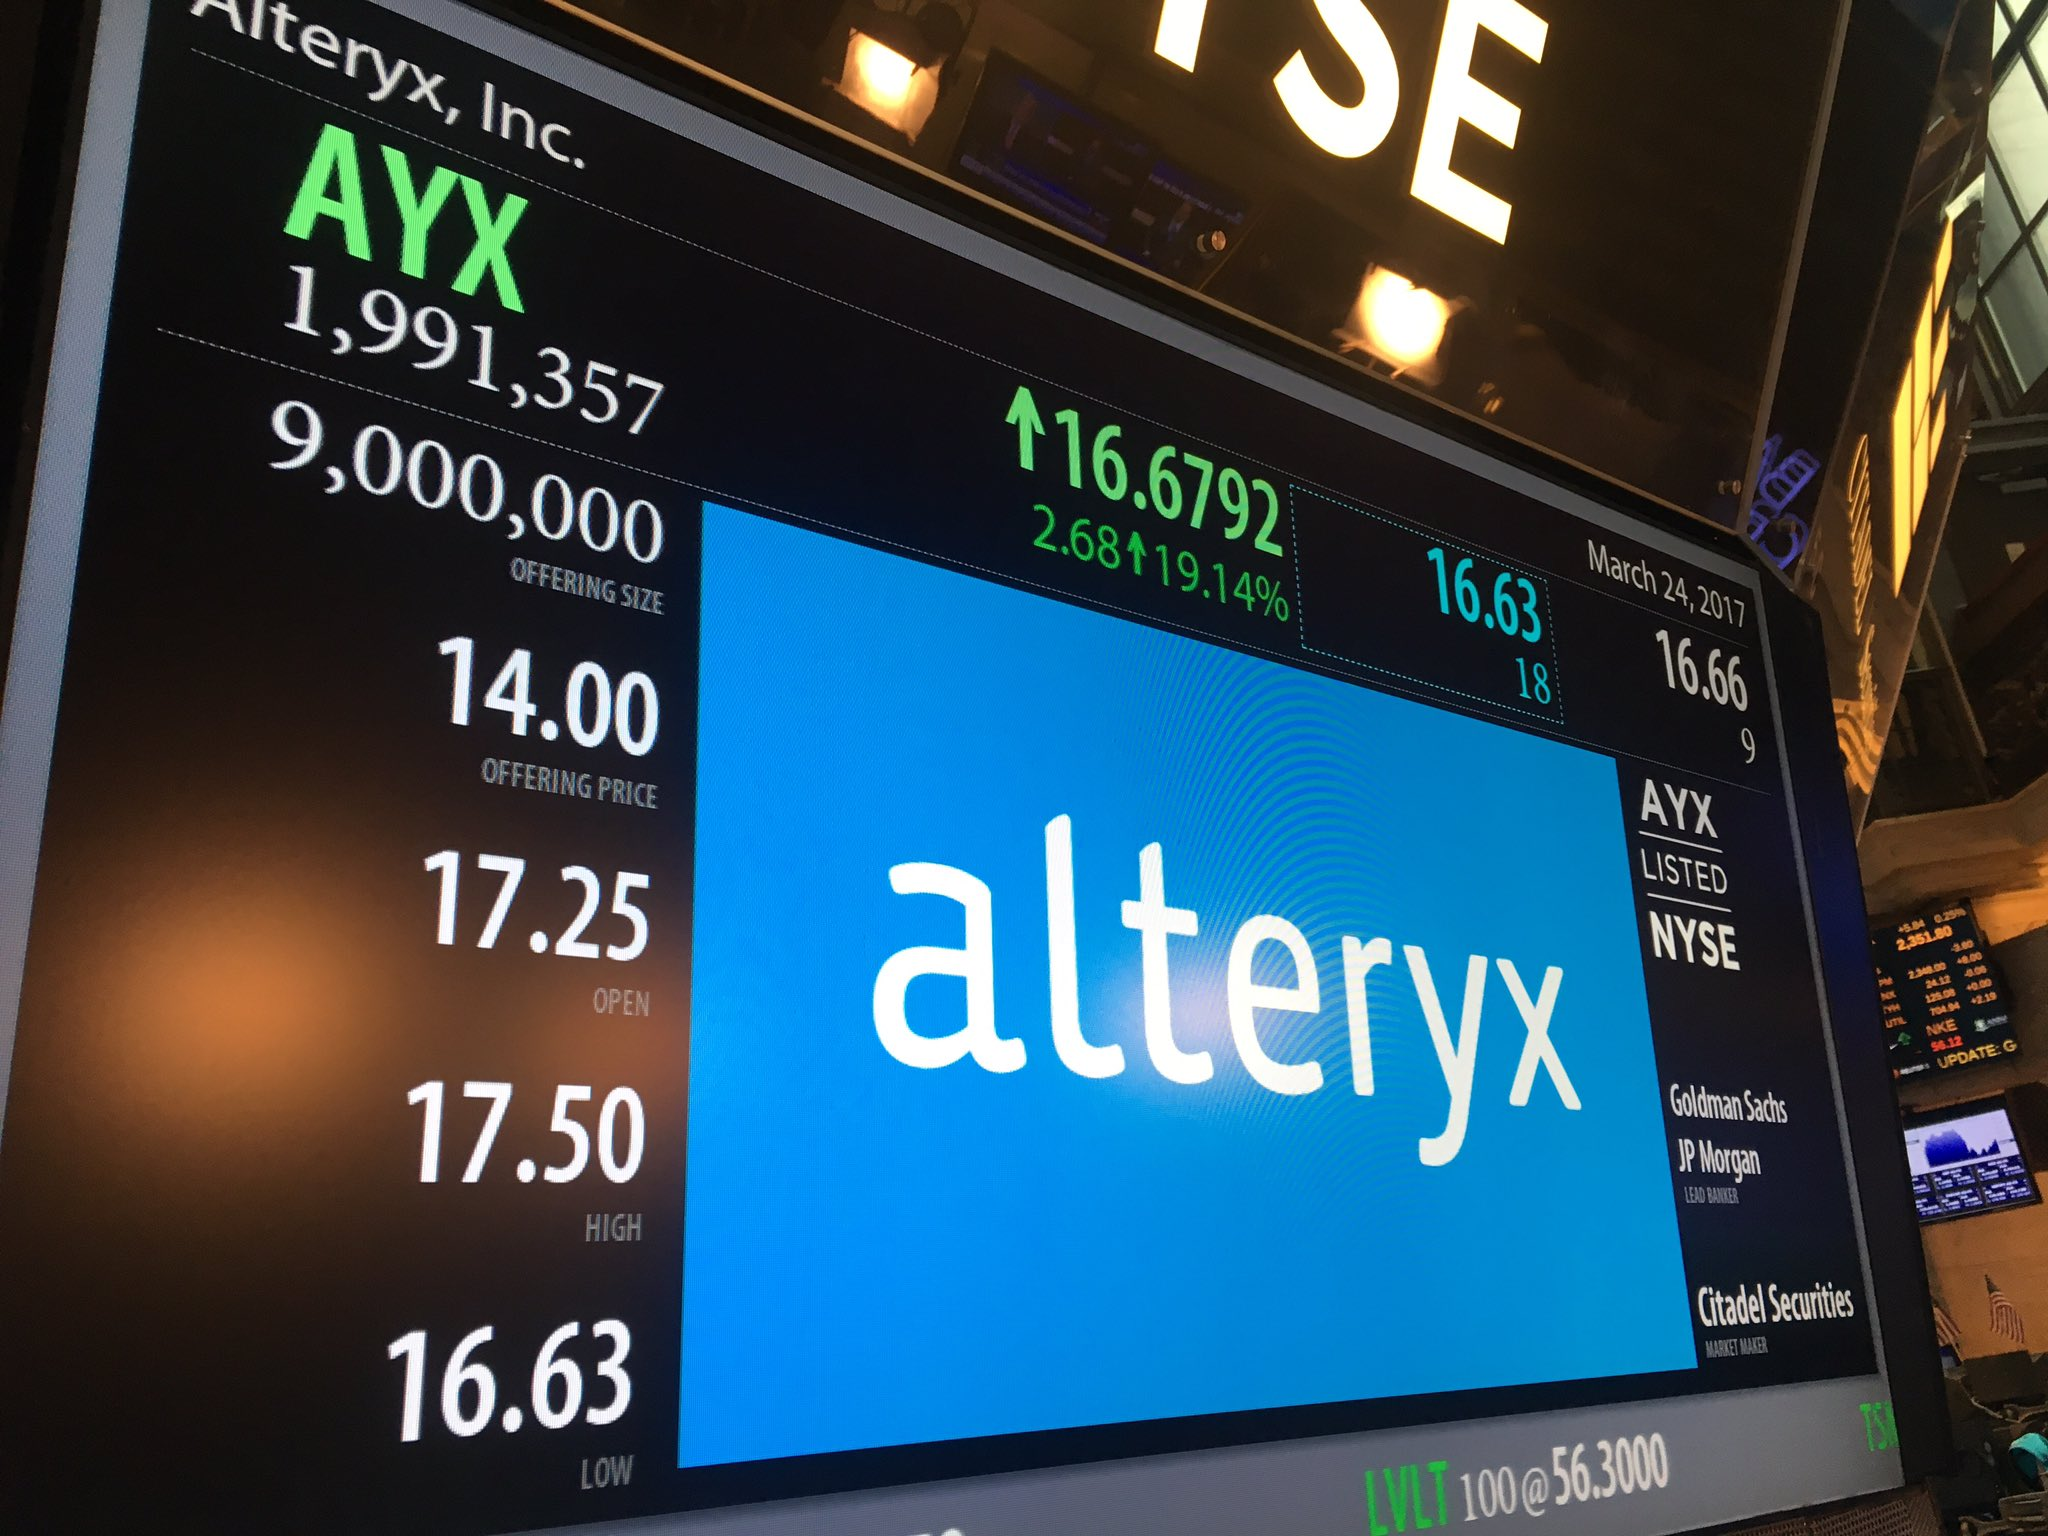 And @alteryx is officially open at $17.25 (NYSE: $AYX) https://t.co/sNPOW9jb5I